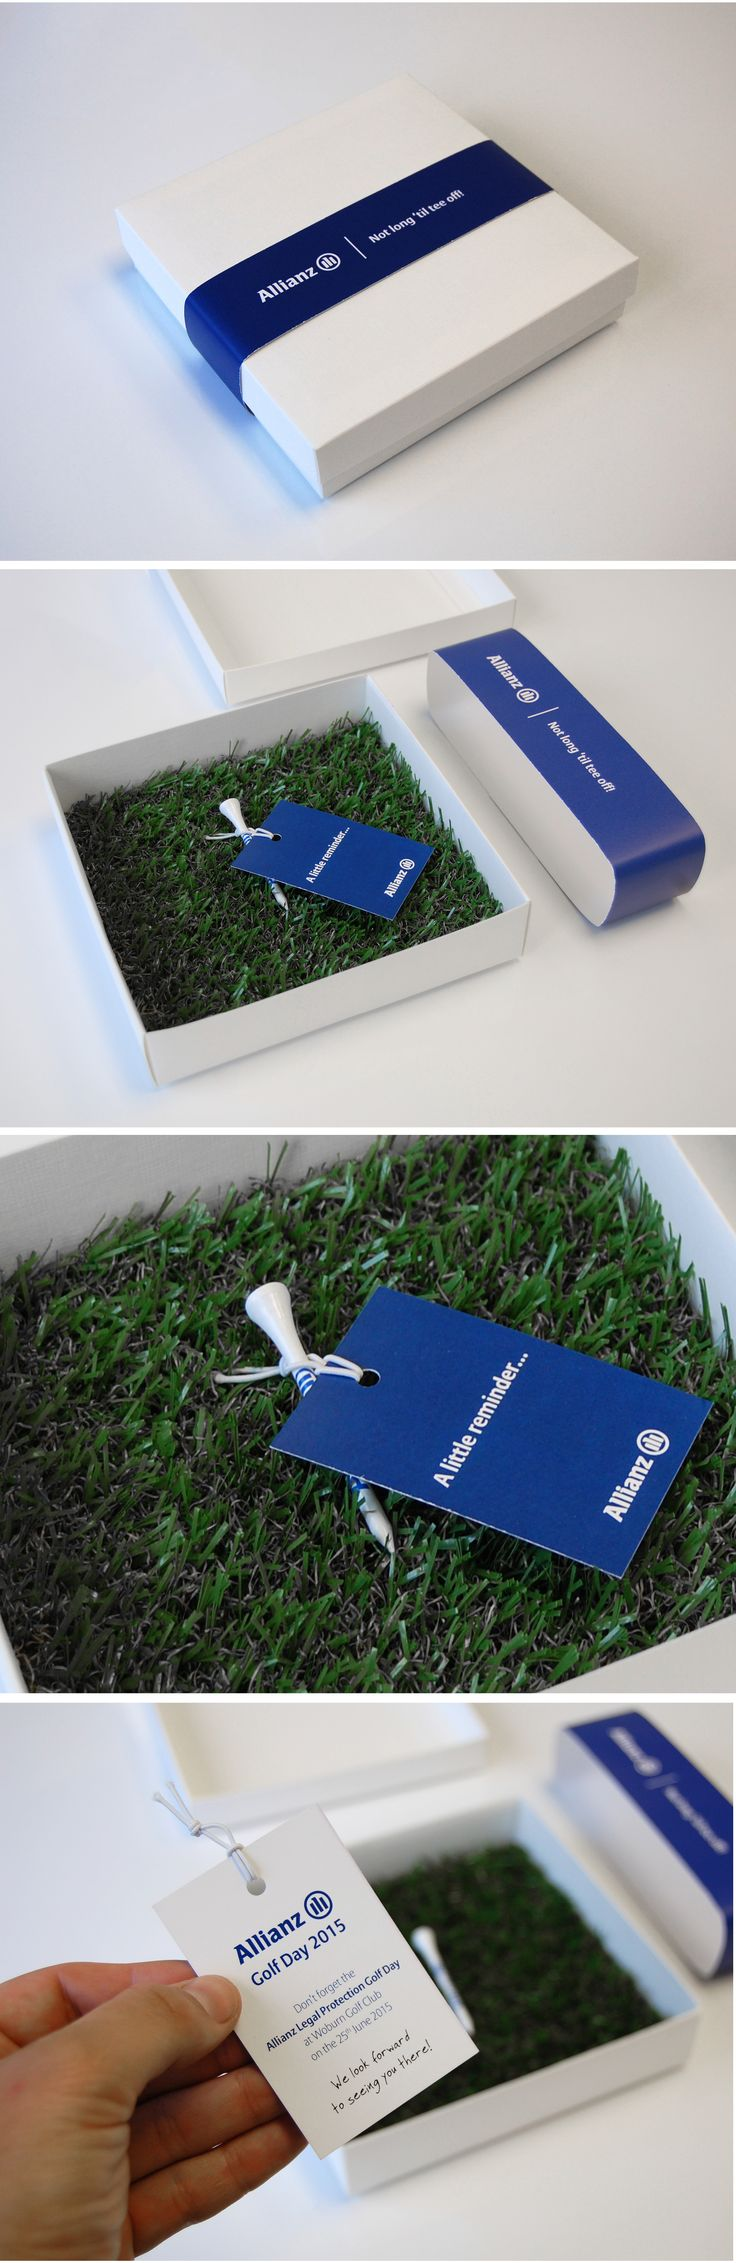 Allianz's Annual Corporate Golf Day 2015  Custom invitation including bespoke box, artificial turf, belly band and tee with invitation tag attached.